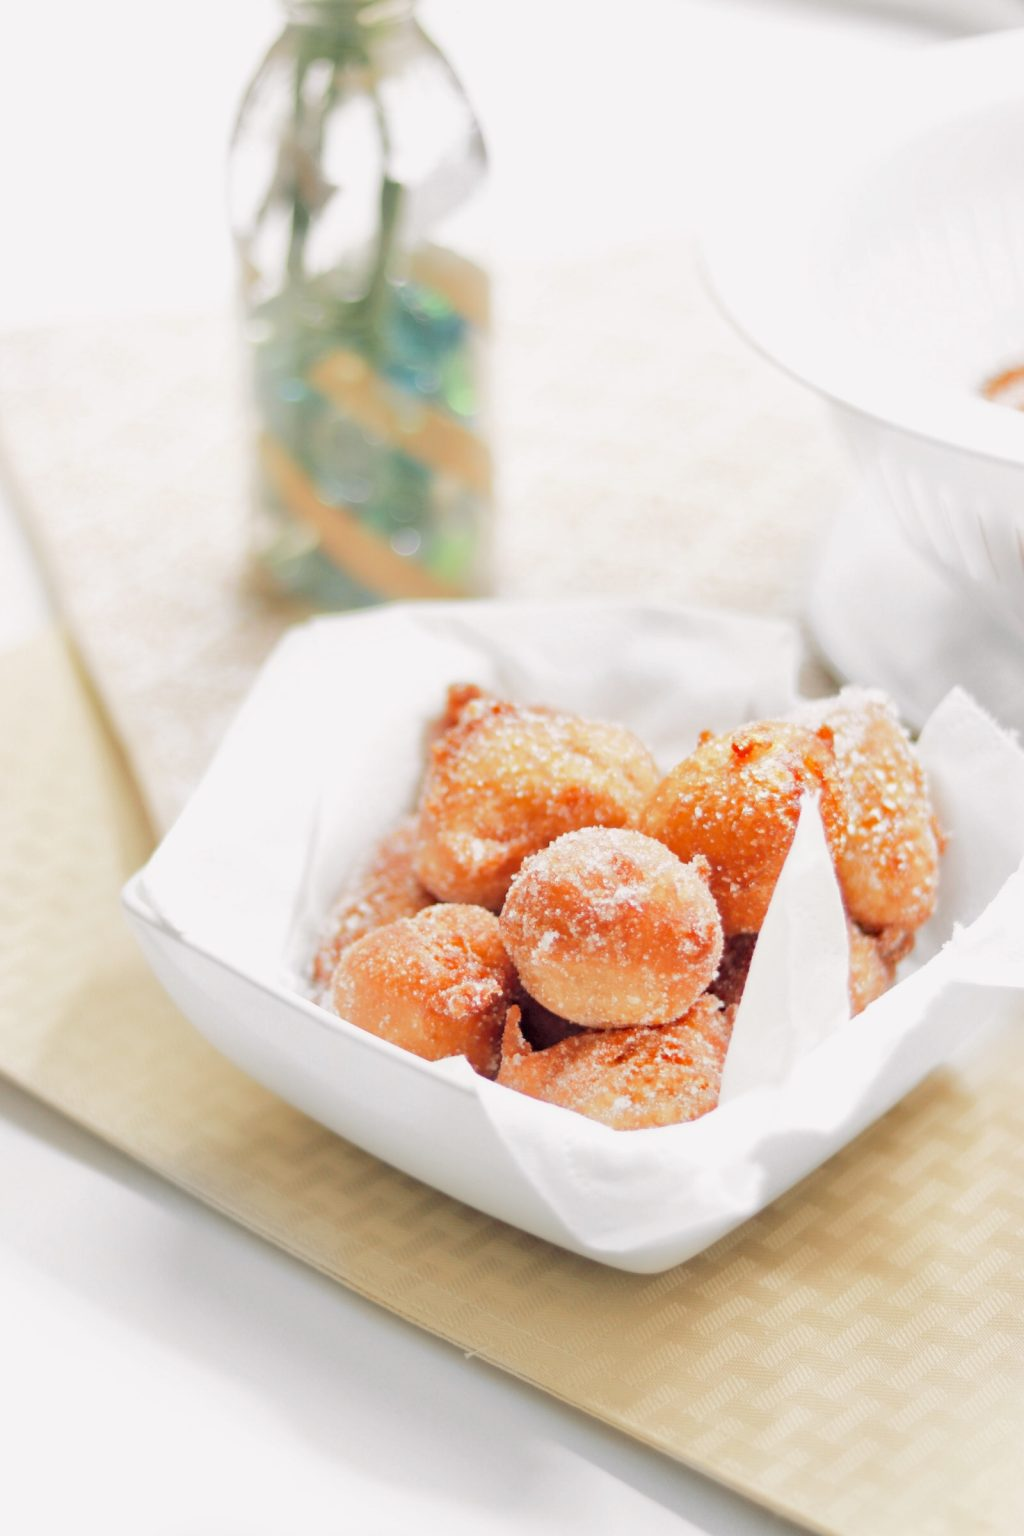 Puff puff snack recipe  1024x1536 - Sugar Puff Puff Recipe For A Quick Evening Snack